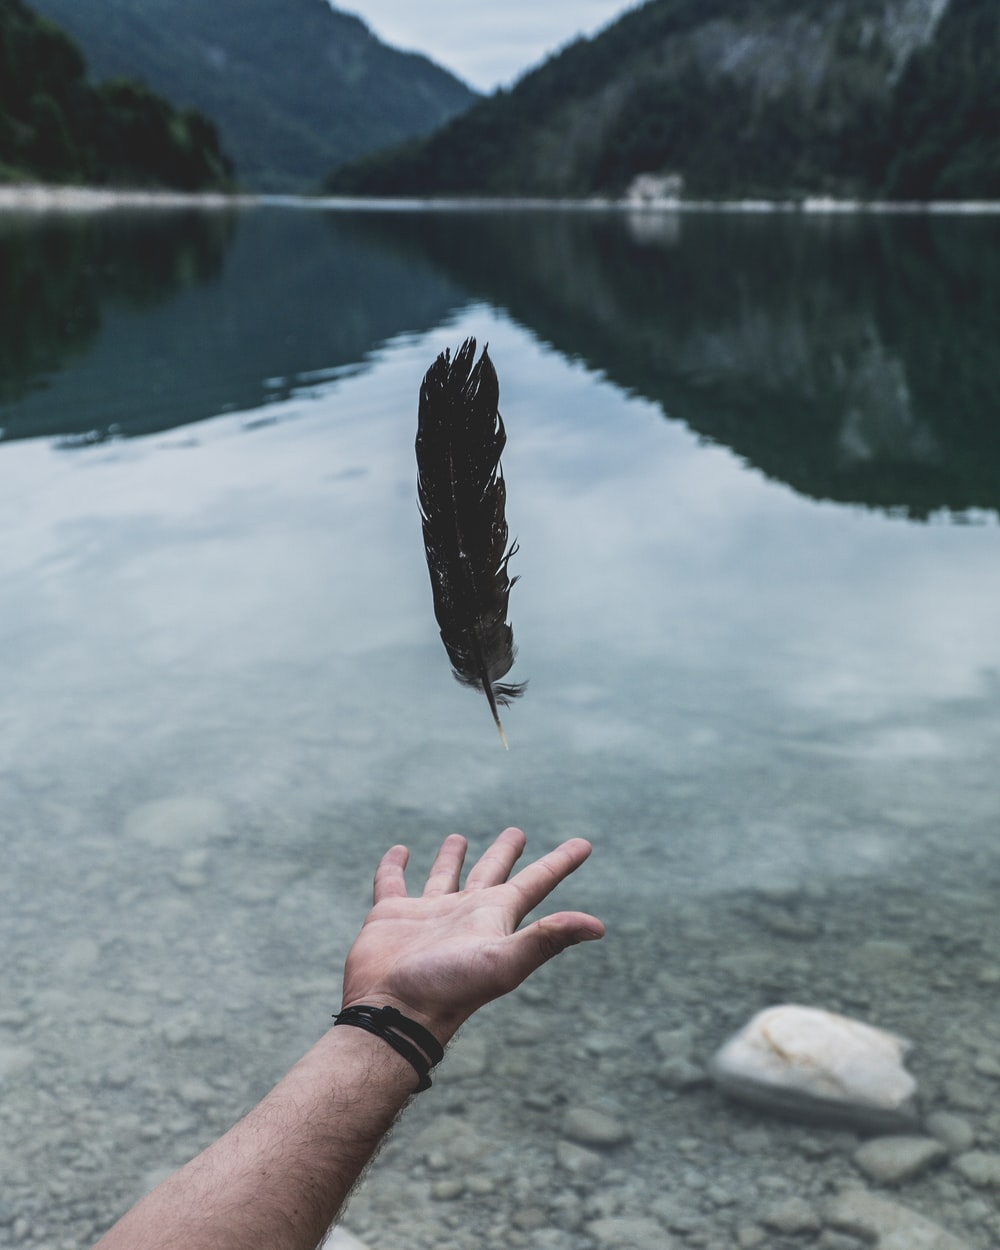 black feather falling on person's hand